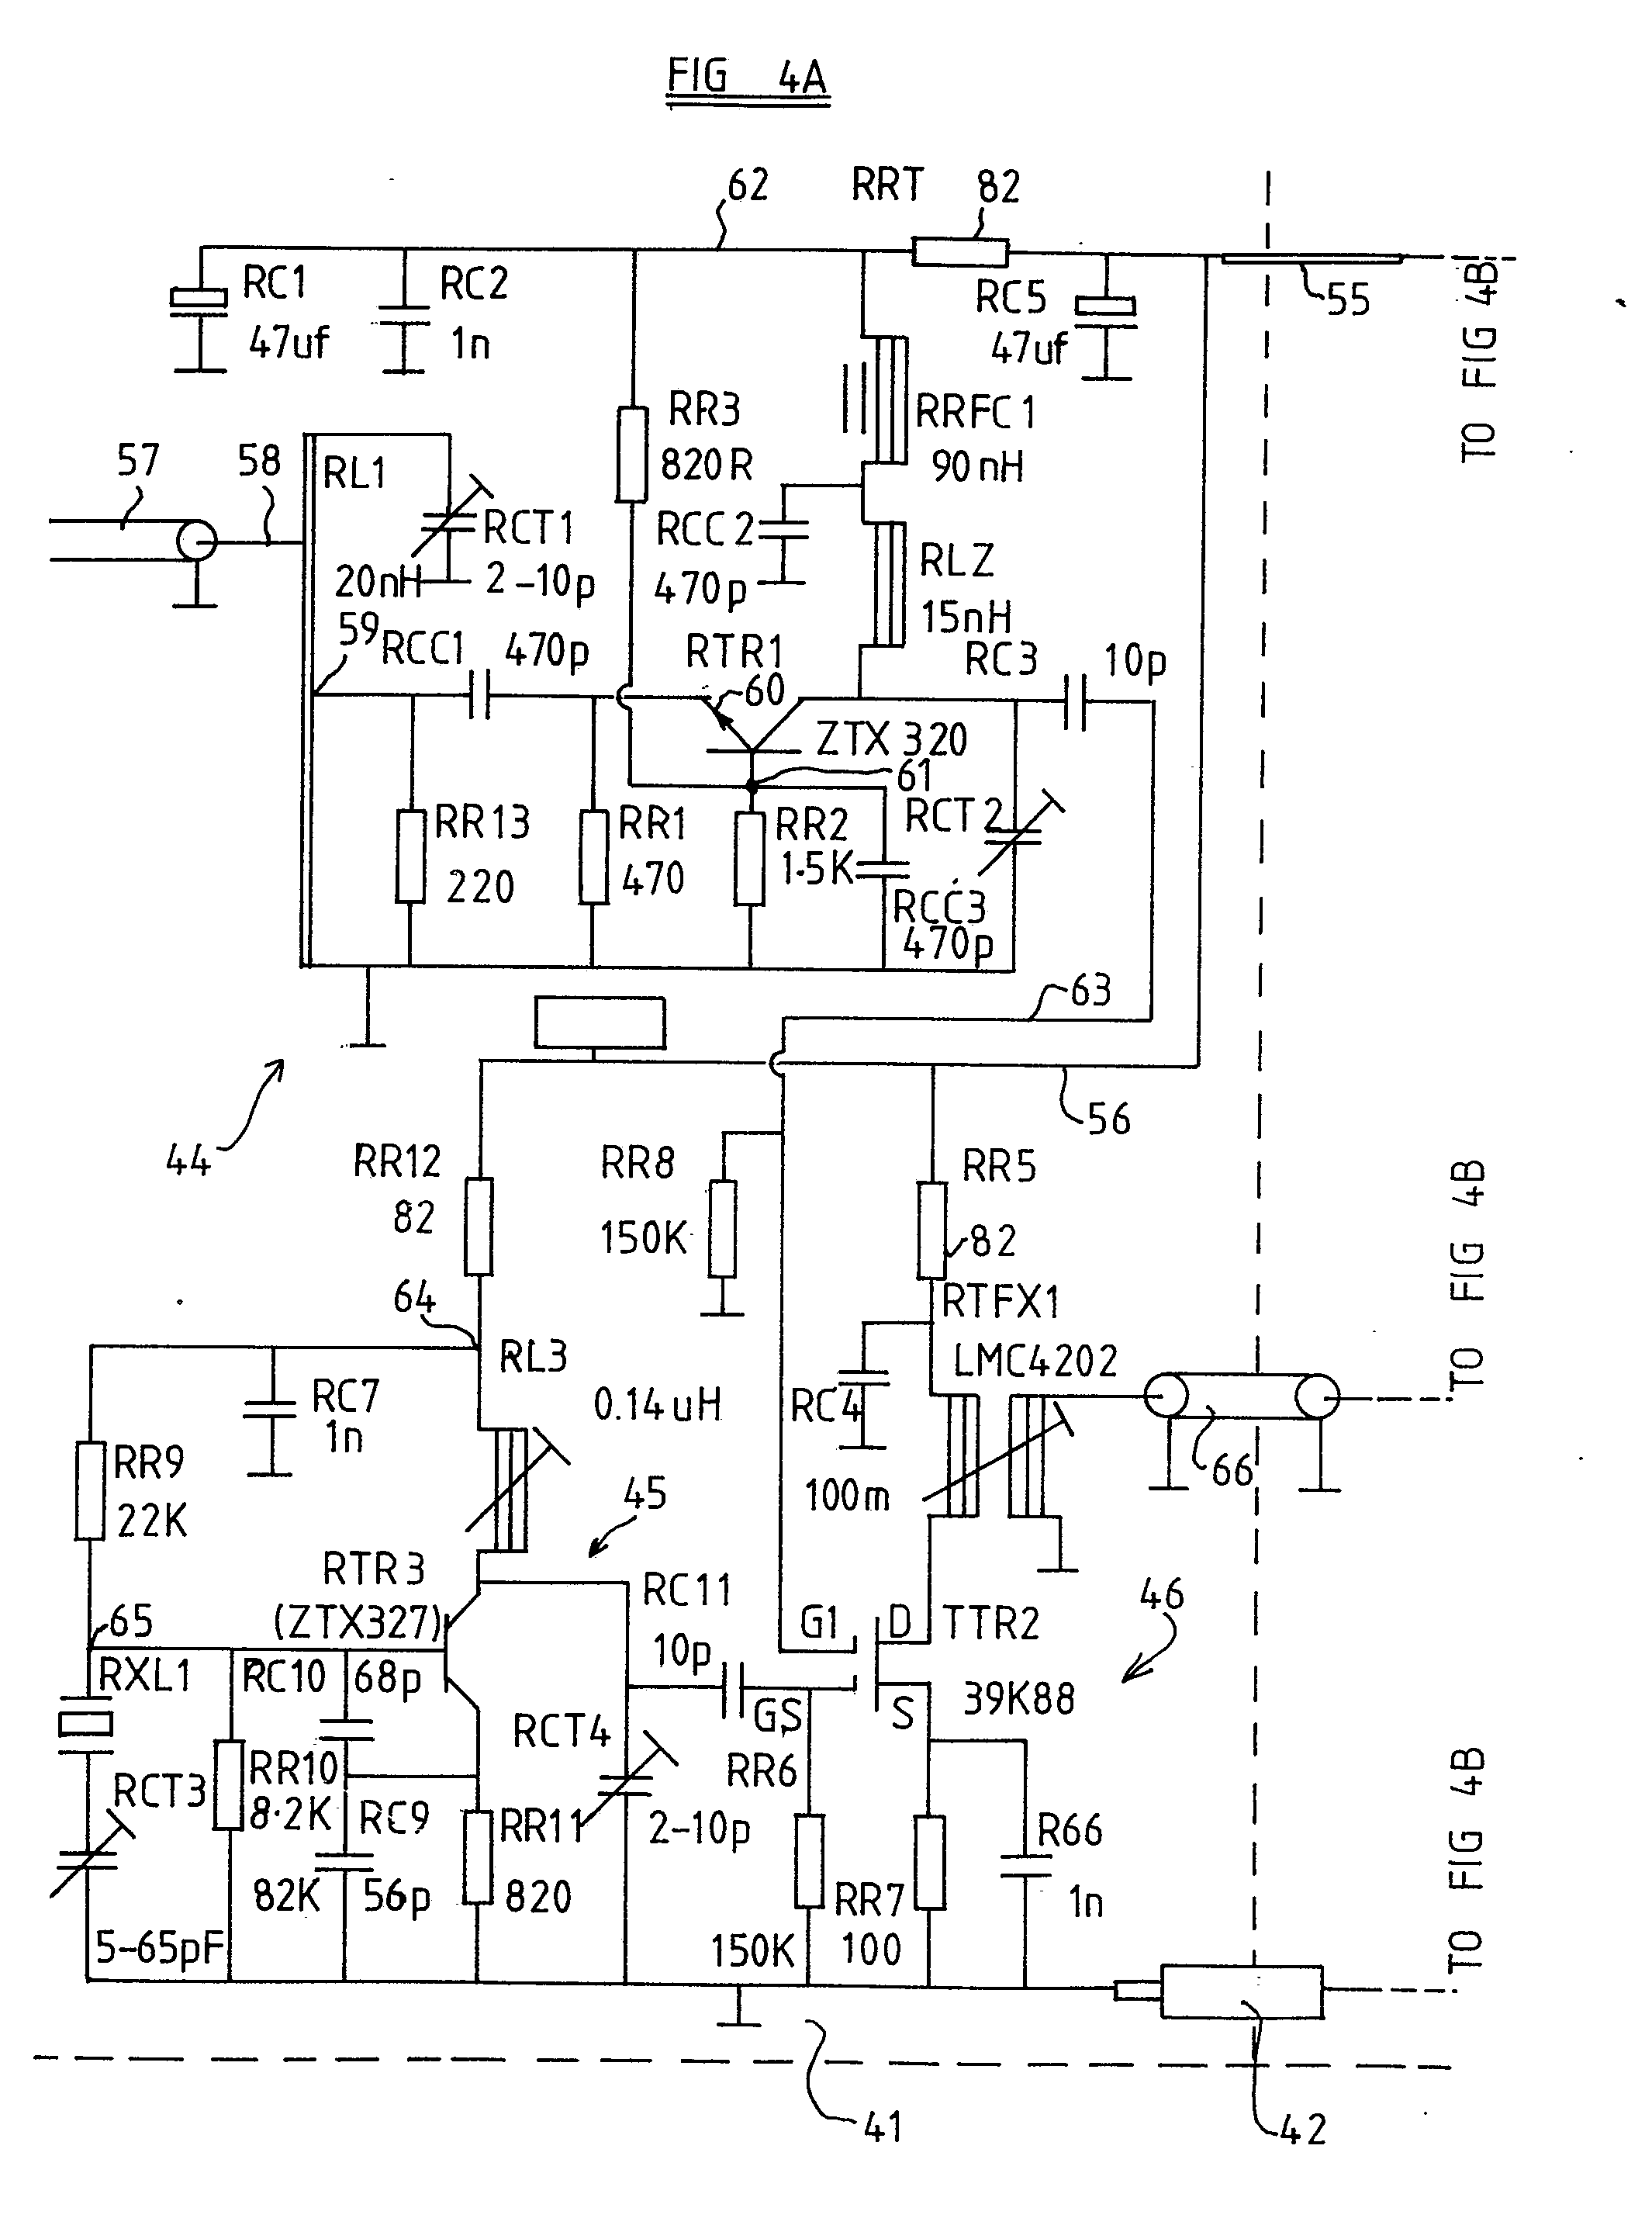 Wiring Diagram For Ge Profile Refrigerator as well EP0323919A1 as well 29718 H likewise 2004 Chevy Tahoe Parts Diagram additionally Ge Low Vole Relay Wiring Diagram. on rr9 relay wiring diagram